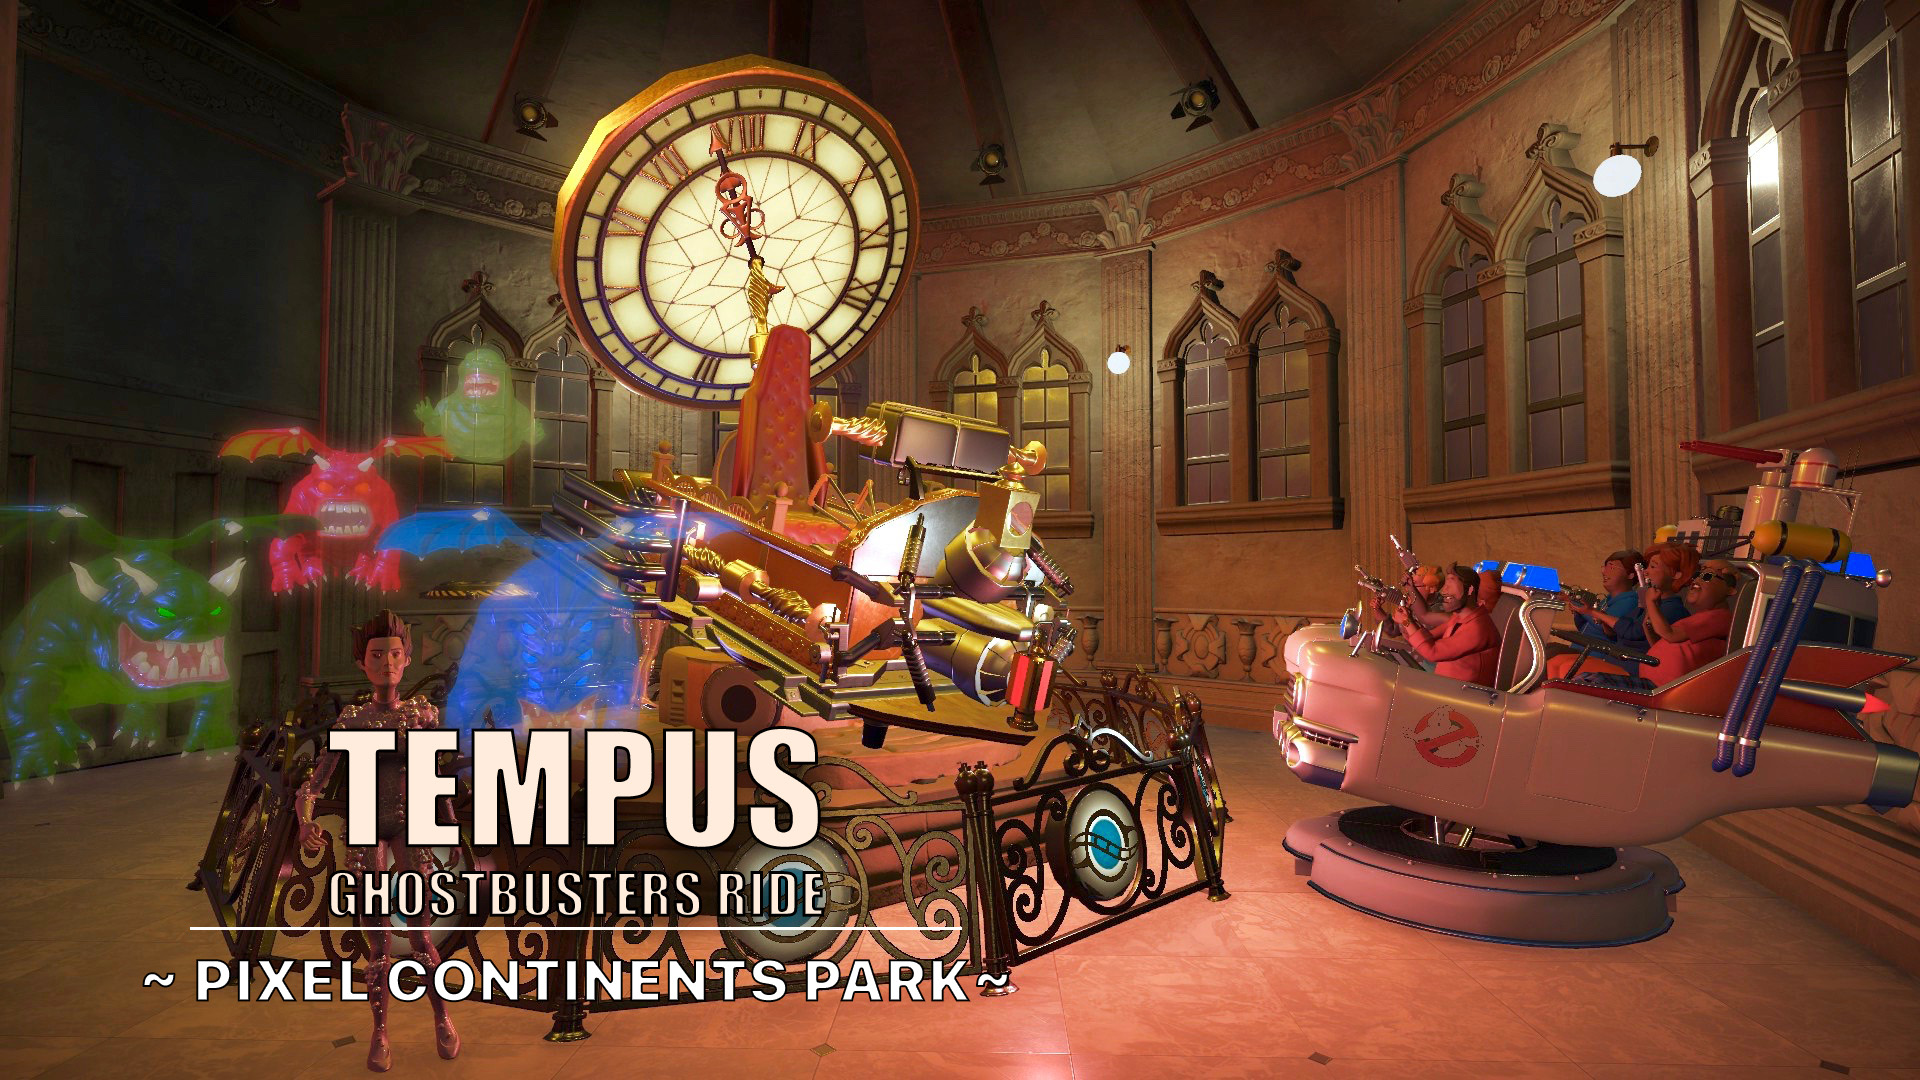 Tempus - Ghostbusters Ride